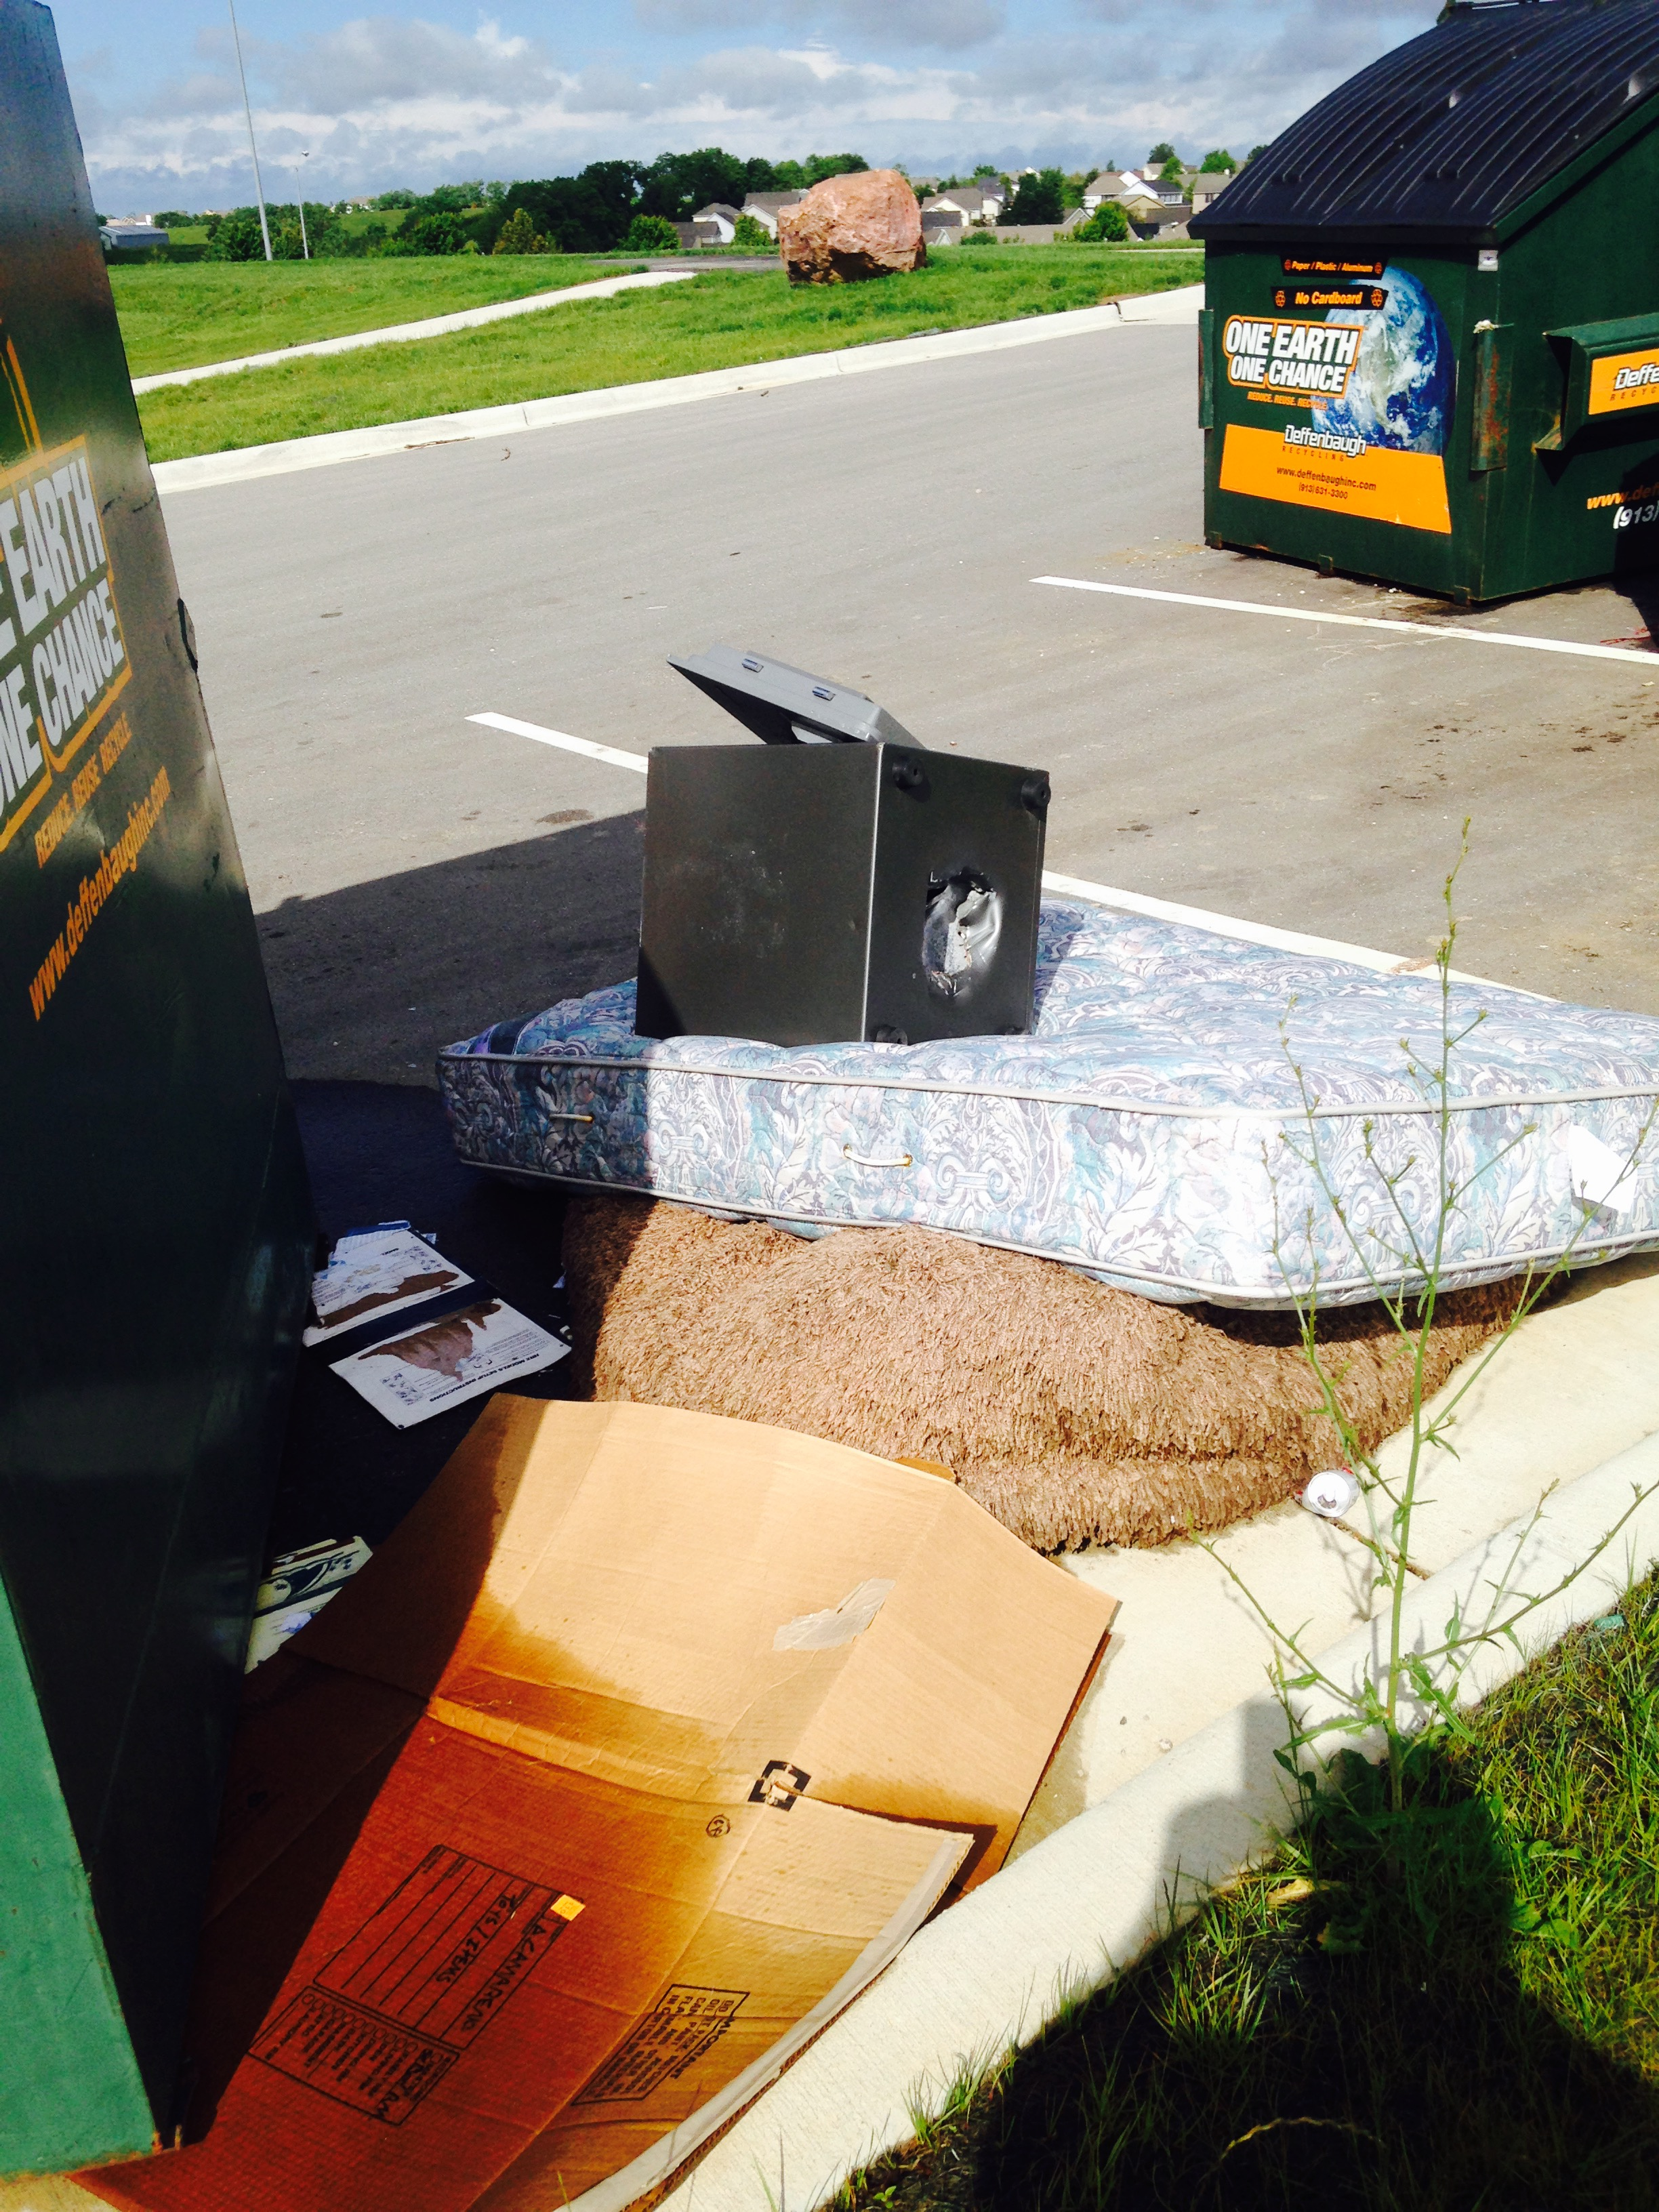 Contributed photo A large safe sits on top of a mattress placed on rolled up carpet outside of a recycling bin located at Platte County Community Center North in Platte City. Officials have grown increasingly concerned with the illegal dumping on site and might discontinue the recycling public service if it continues.